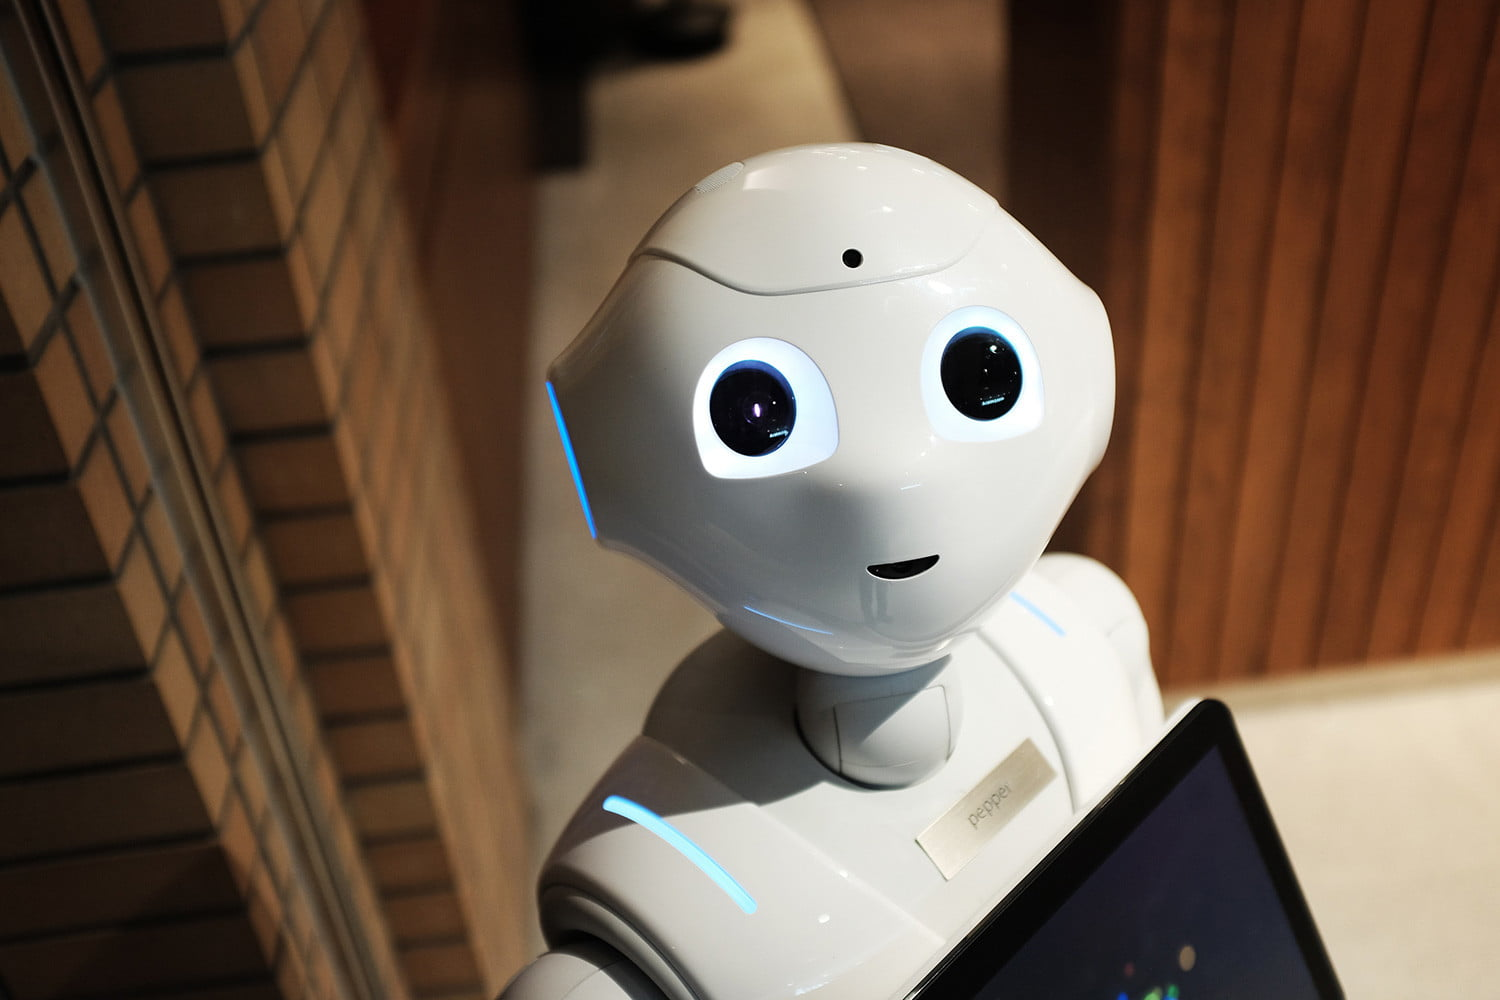 Pepper The Robot Fired From Grocery Store For Not Being Up